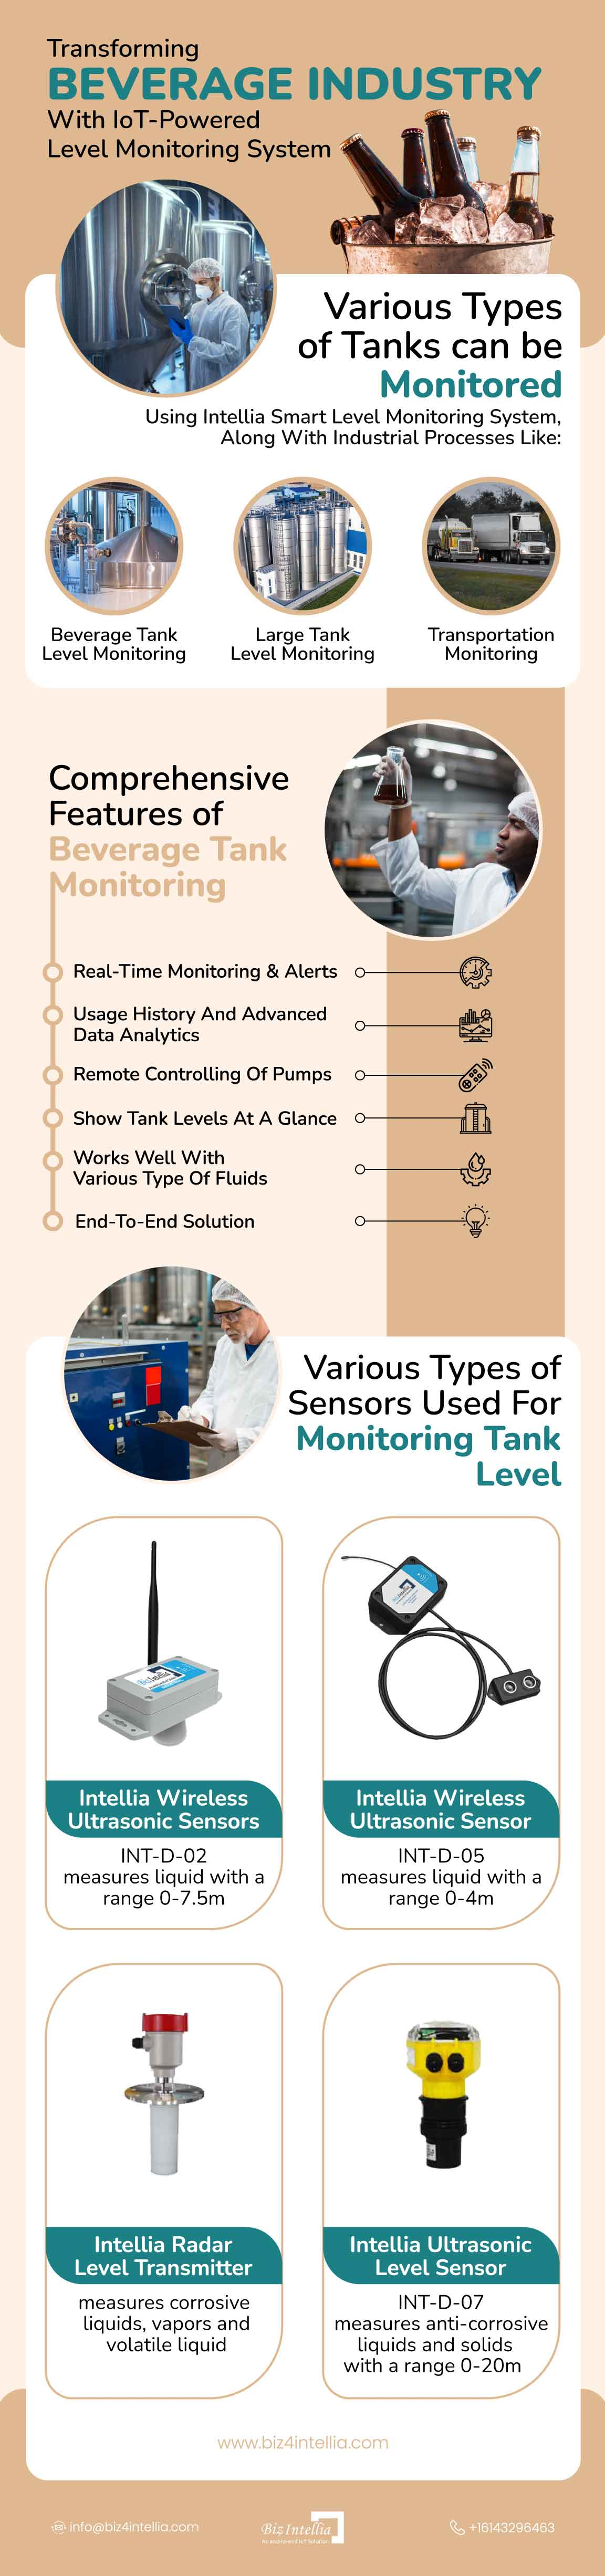 transforming-beverage-industry-with-iot-powered-level-monitoring-system